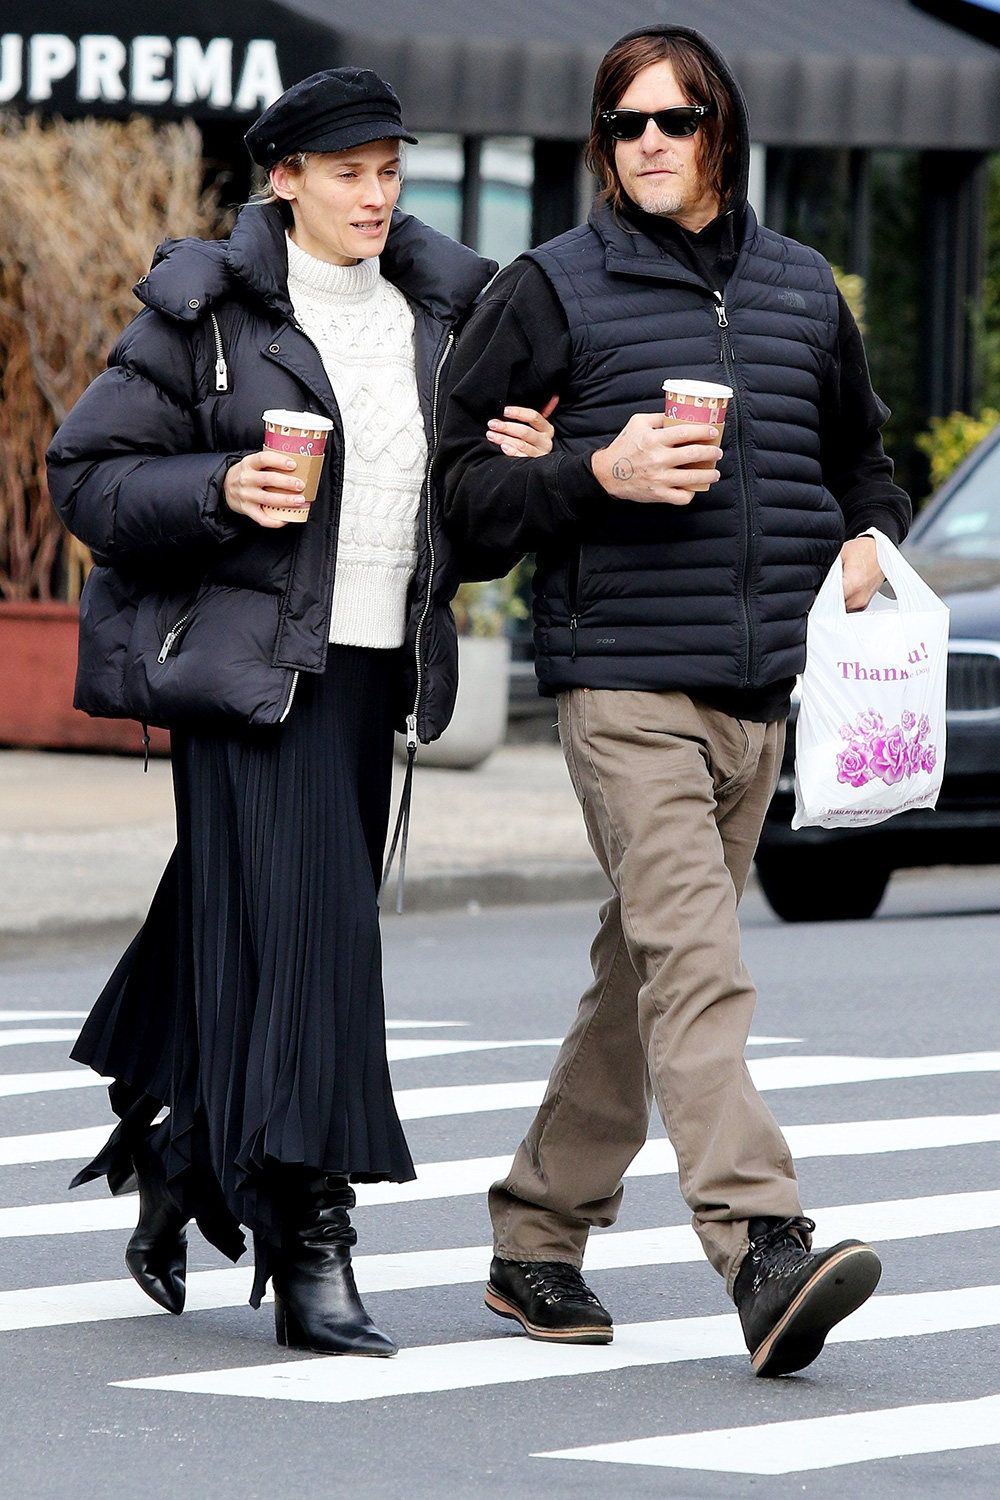 Diane Kruger and Norman Reedus walk arm-in-arm as they go for a morning coffee run in Manhattan's West Village area. 28 Jan 2020